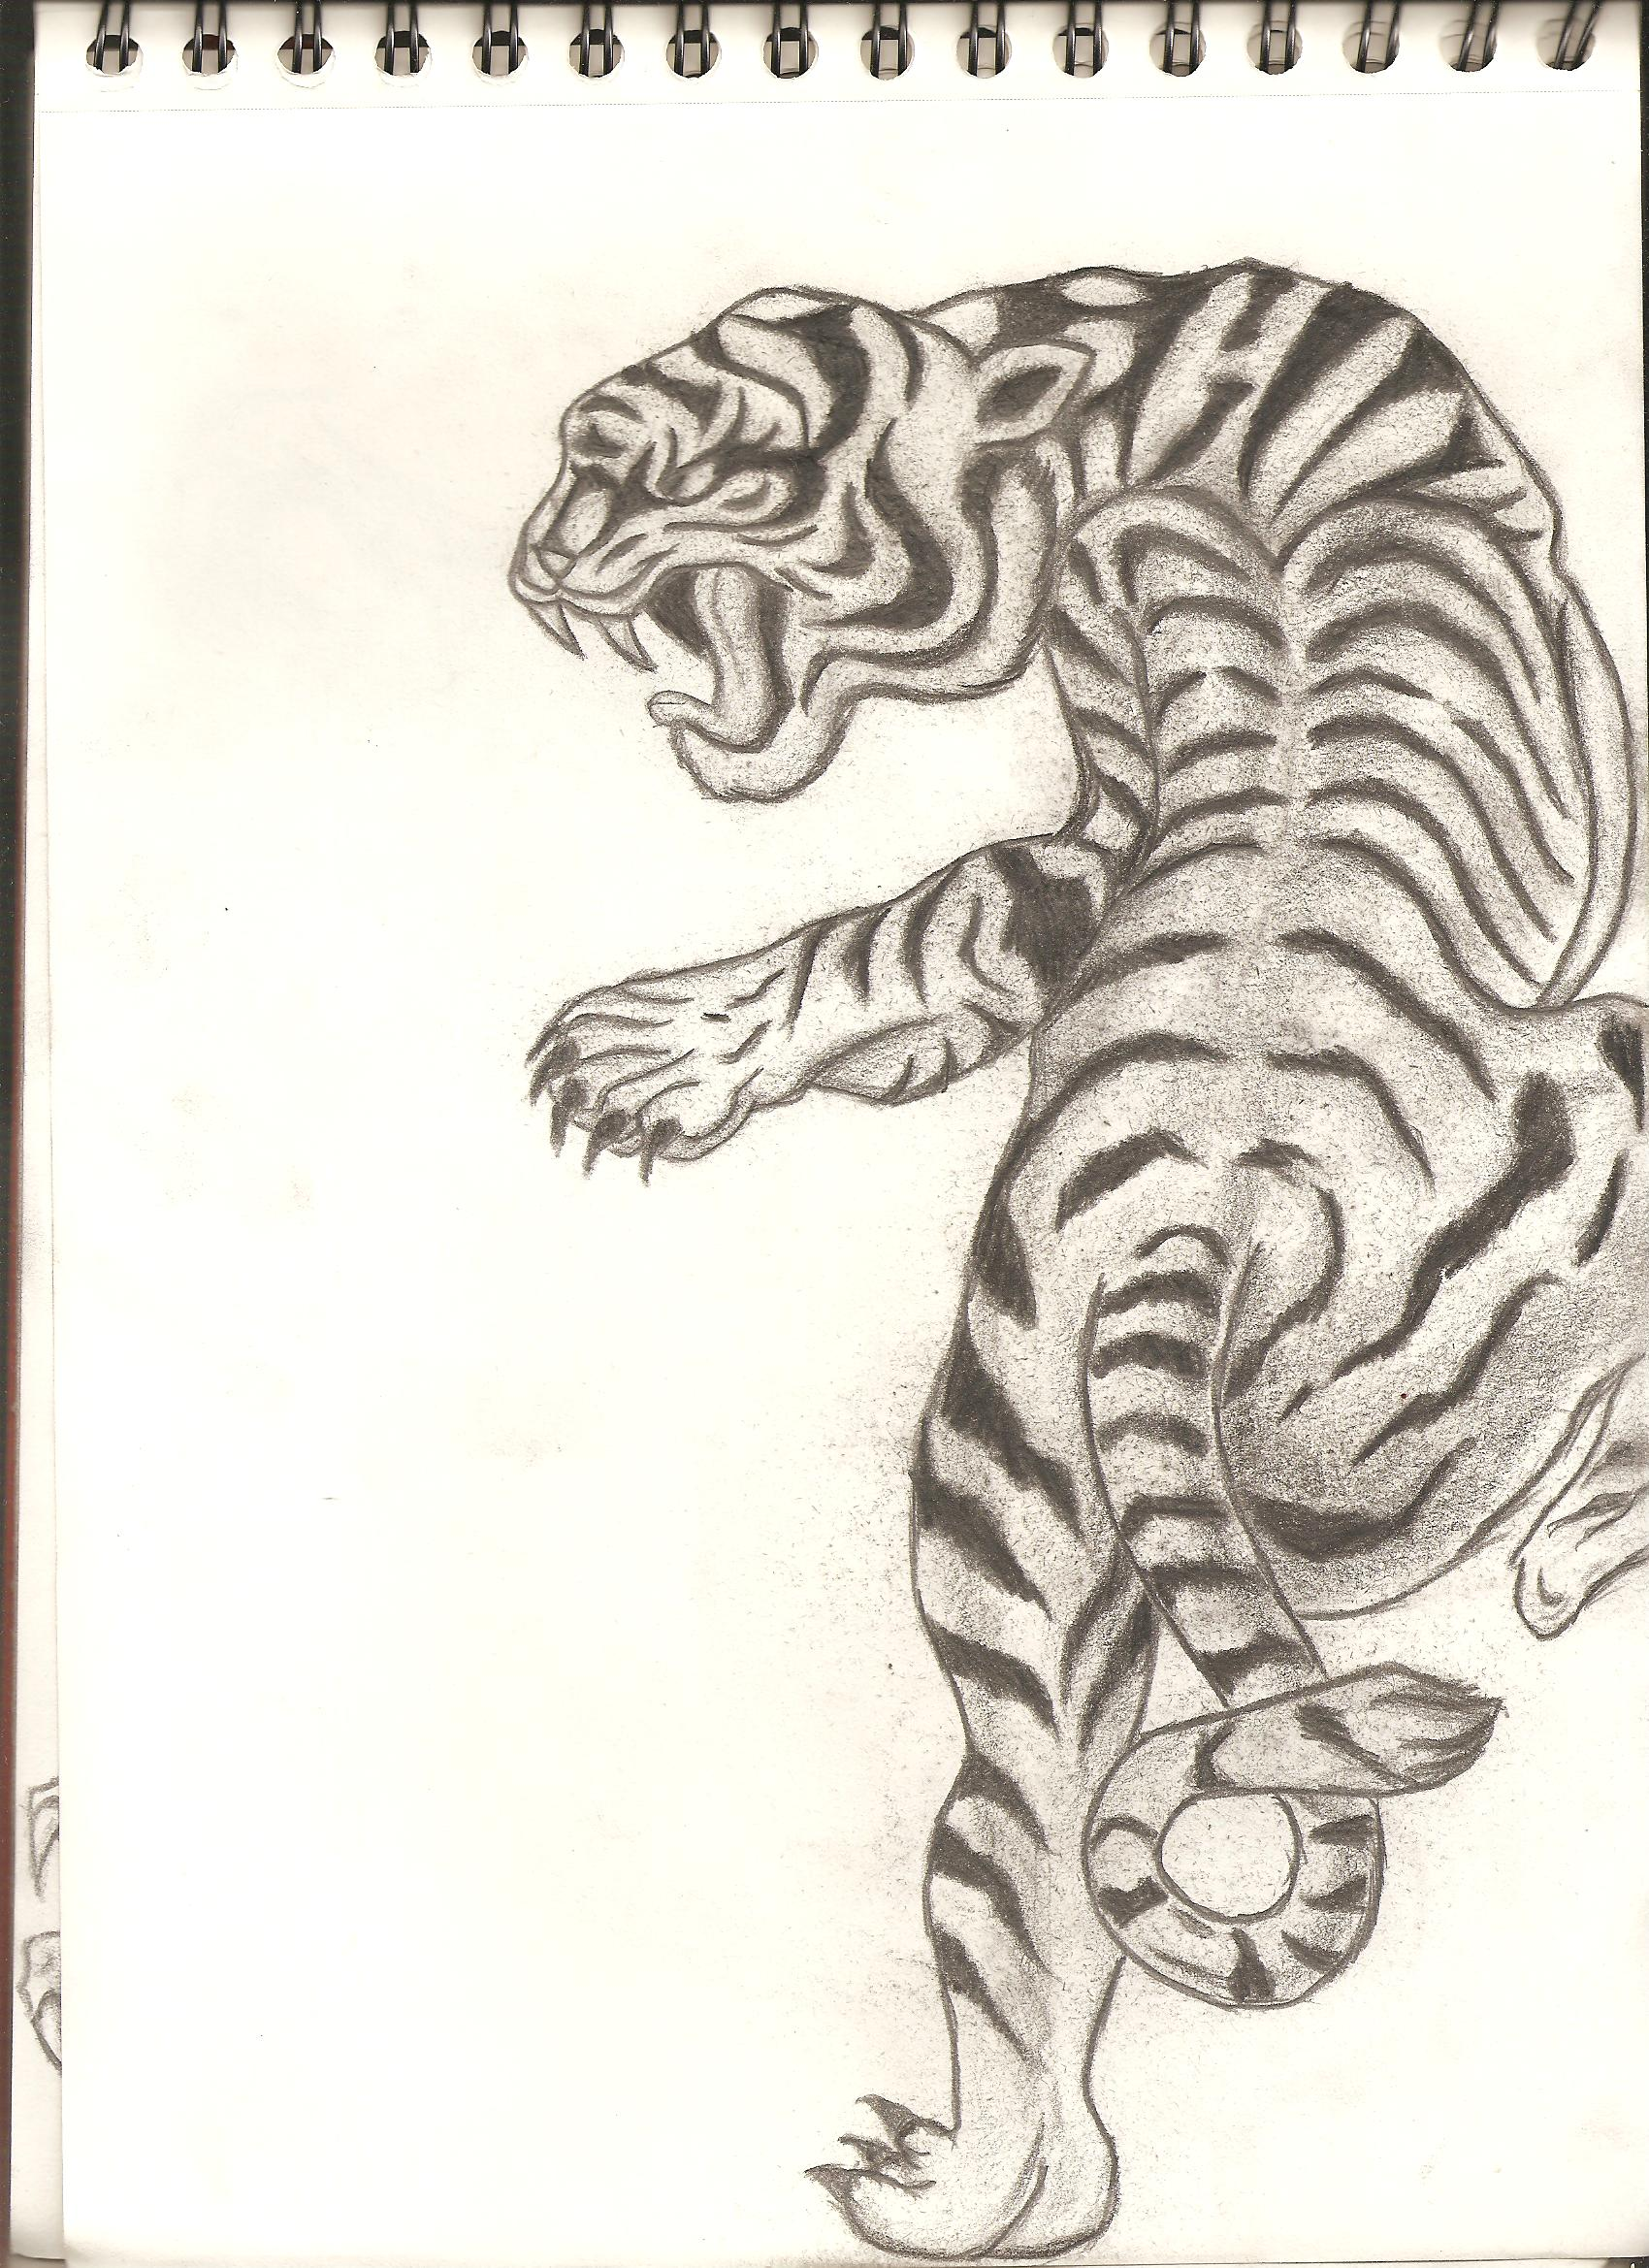 Classic japanese style tiger by DBZ-Fanatic1 on DeviantArt